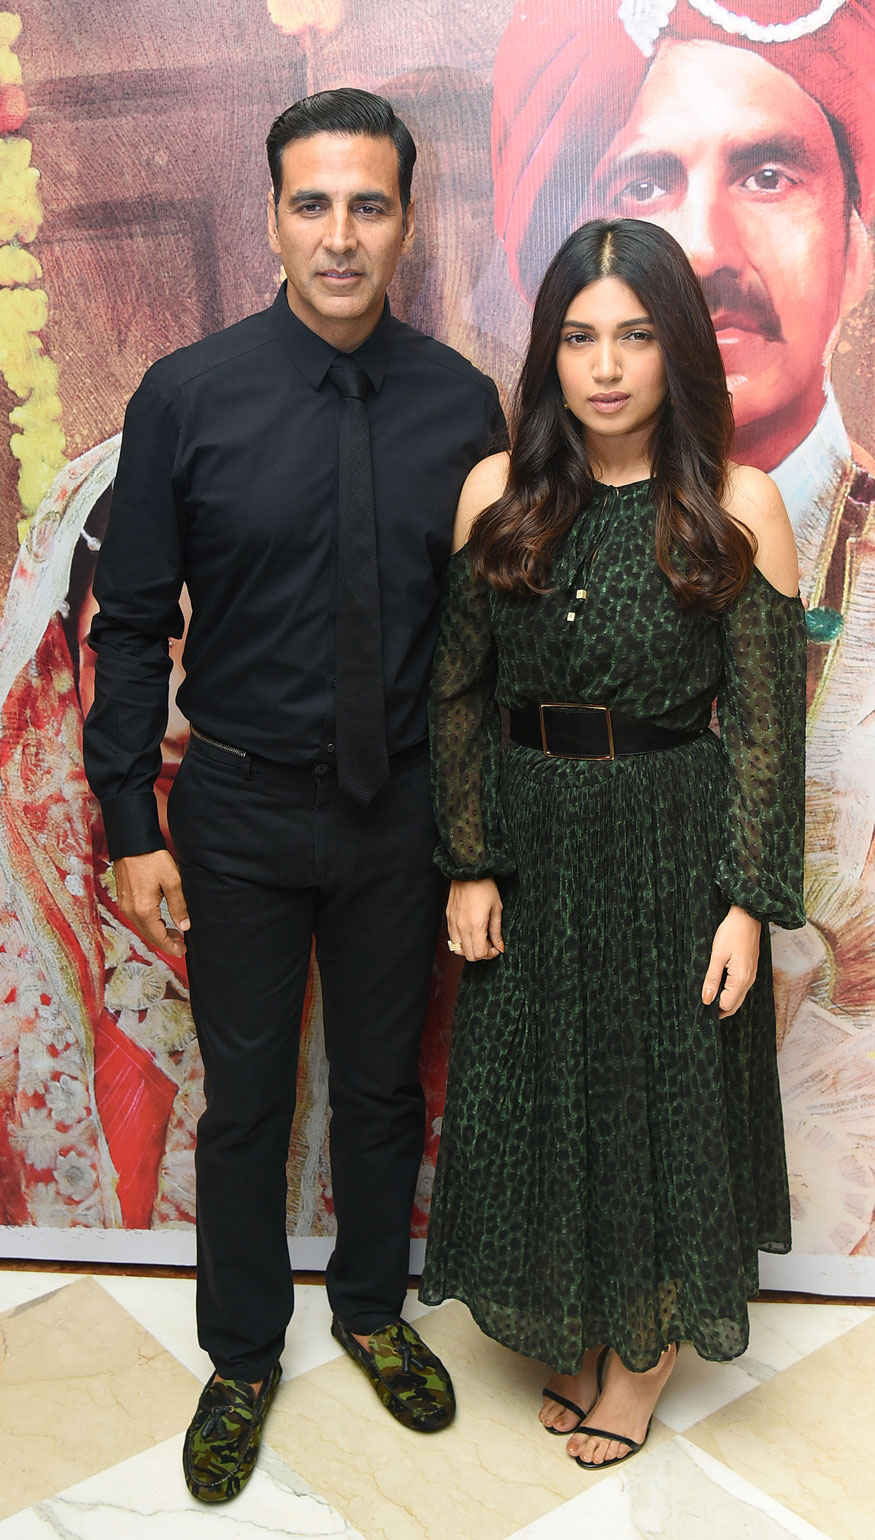 Akshay Kumar and Bhumi Padnekar Promoting Film 'Toilet: Ek Prem Katha' in Delhi